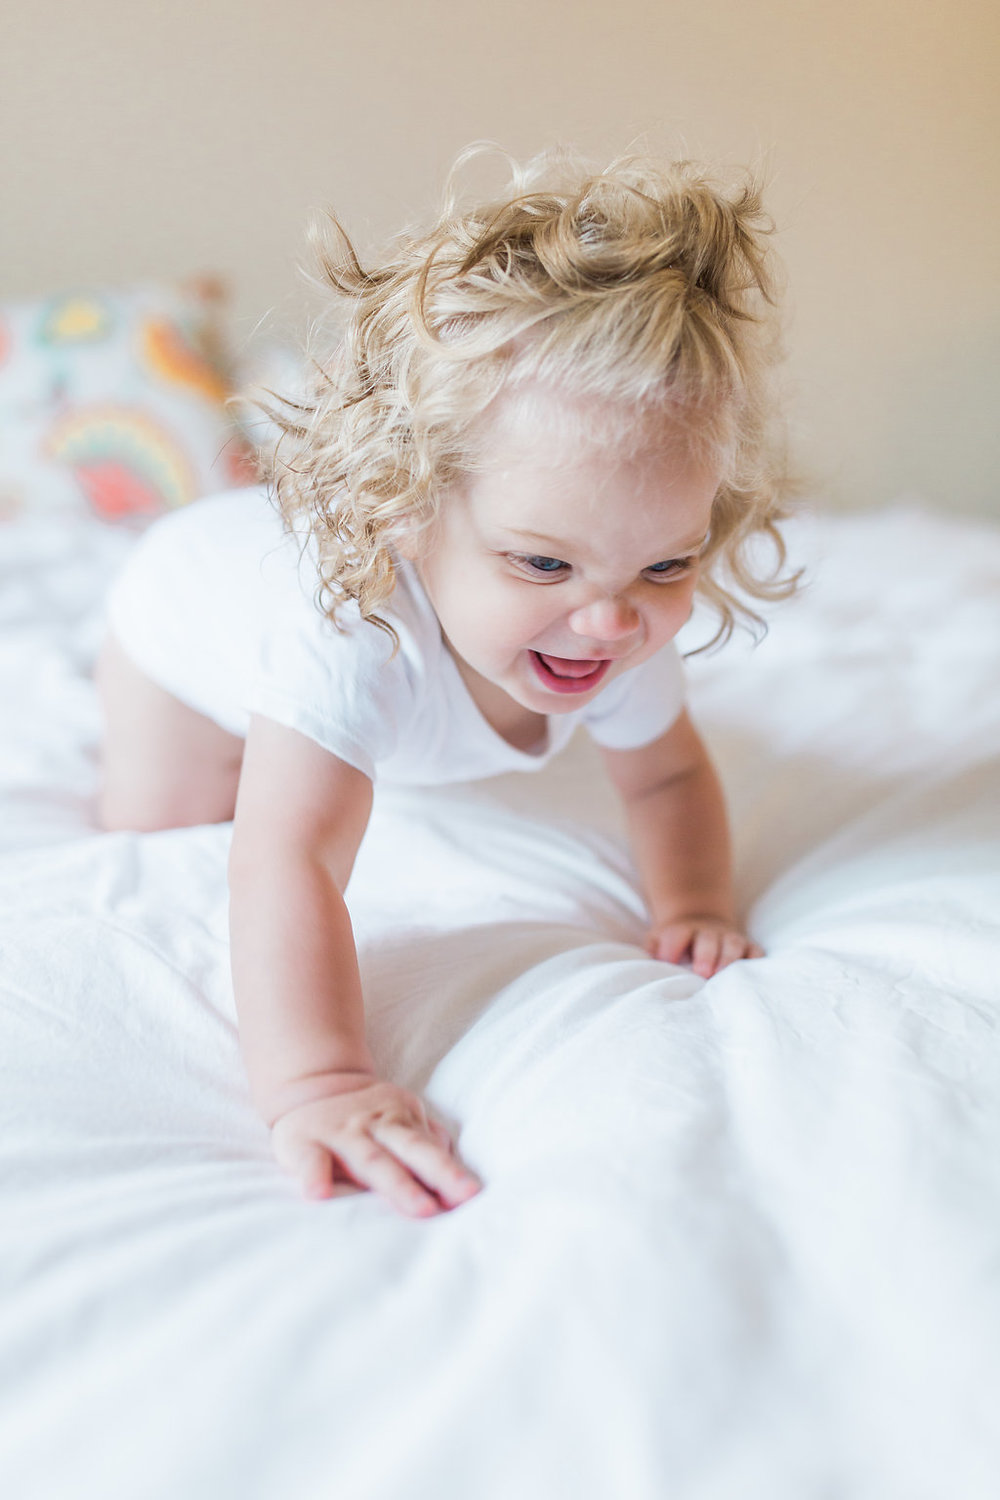 Emma Rose Company   Lifestyle Photographer   Seattle Wedding Photographer   Baby Crawling on bed   In Home Lifestyle Session   Family Photography   Family photo shoot   Adorable Baby Girl   Mastin Labs